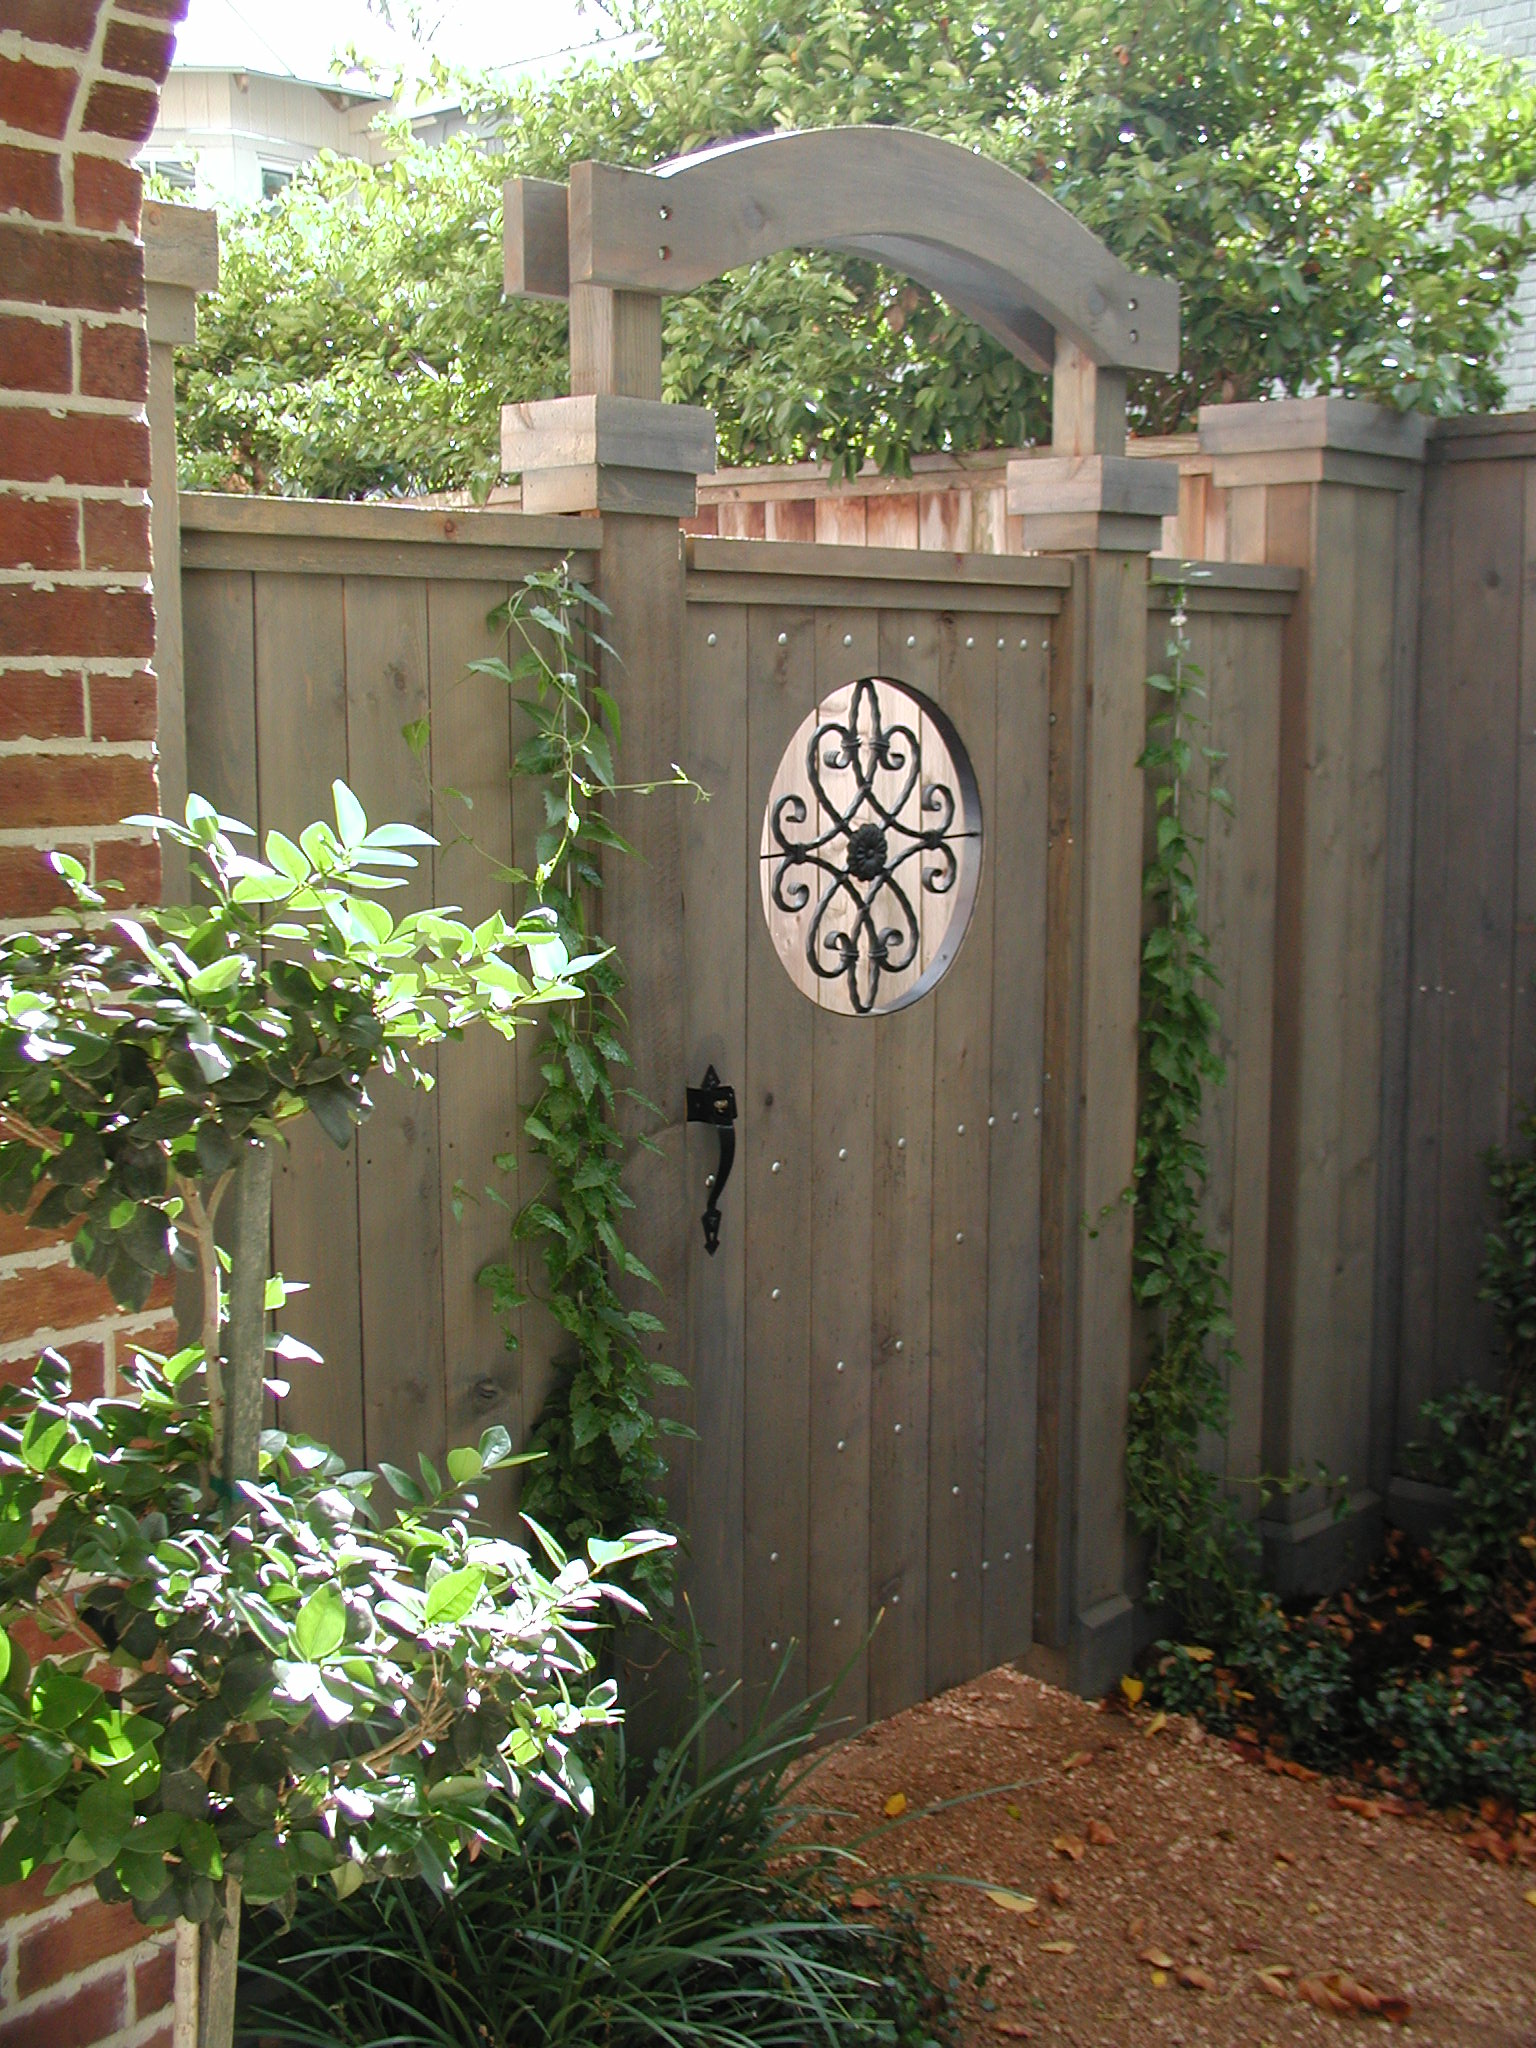 21 Great Garden Gate Ideas - Home Decor & DIY Ideas